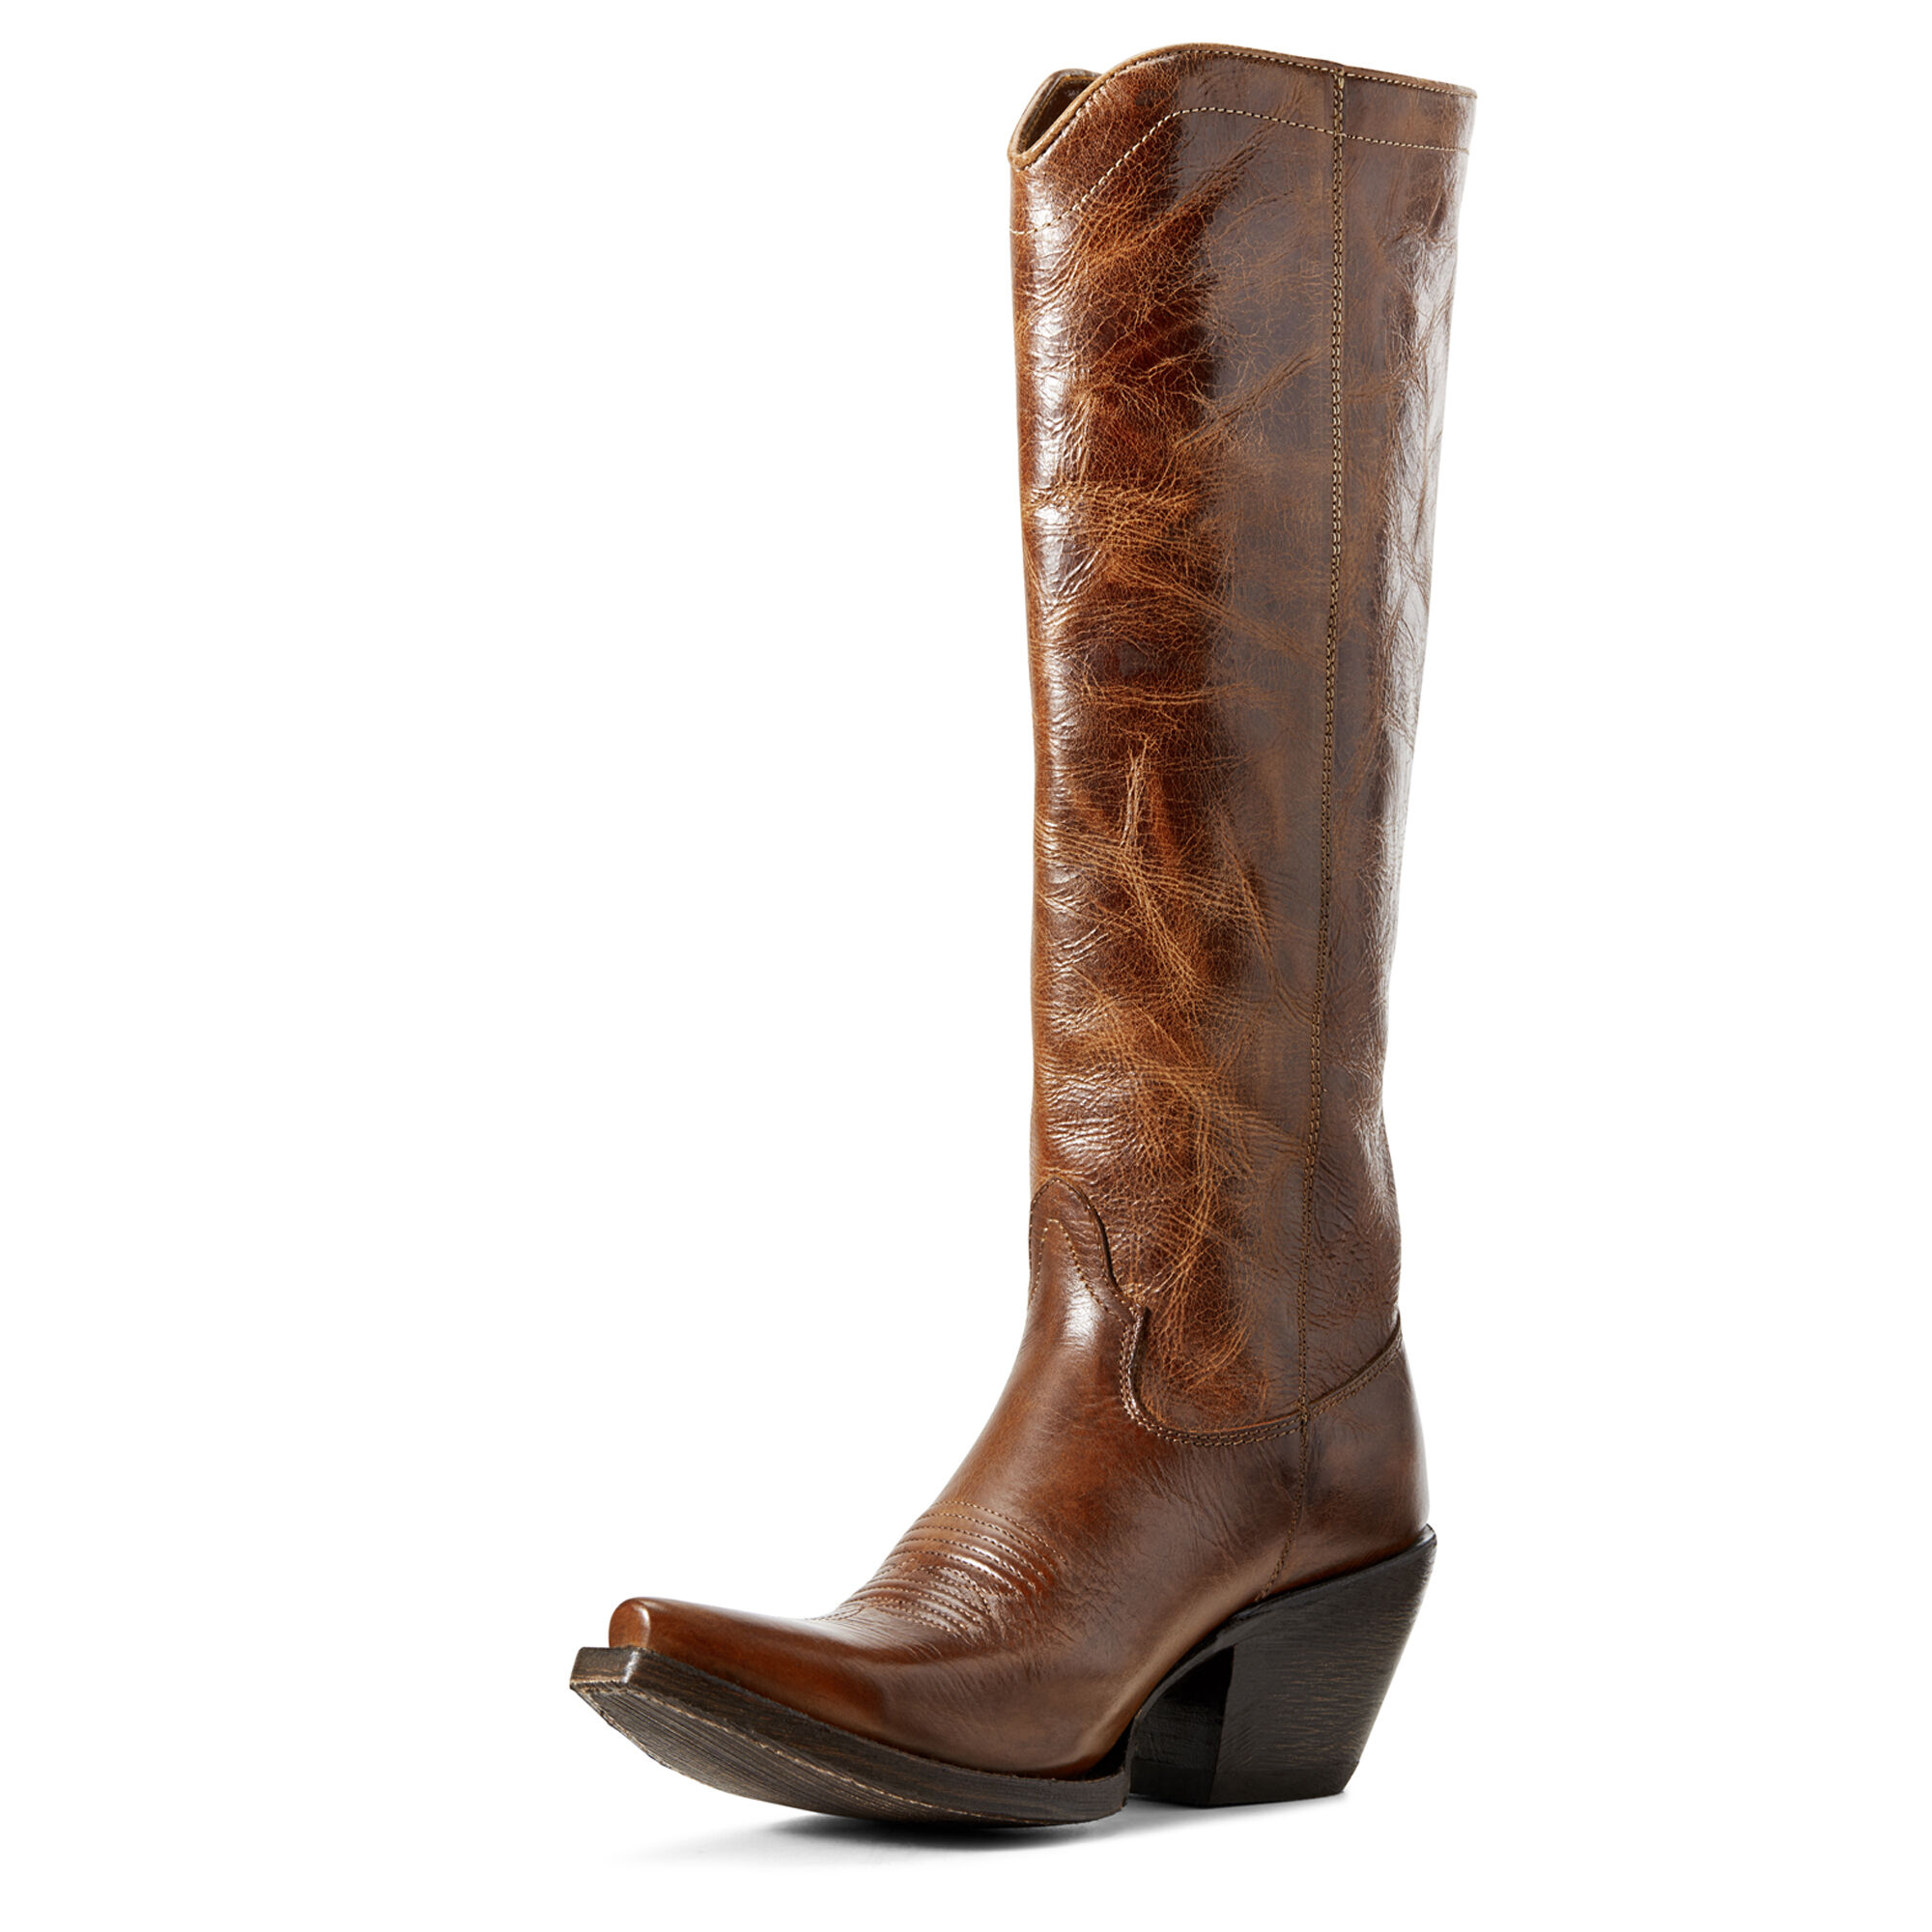 Women's Giselle Western Boots in Dark Tan by Ariat